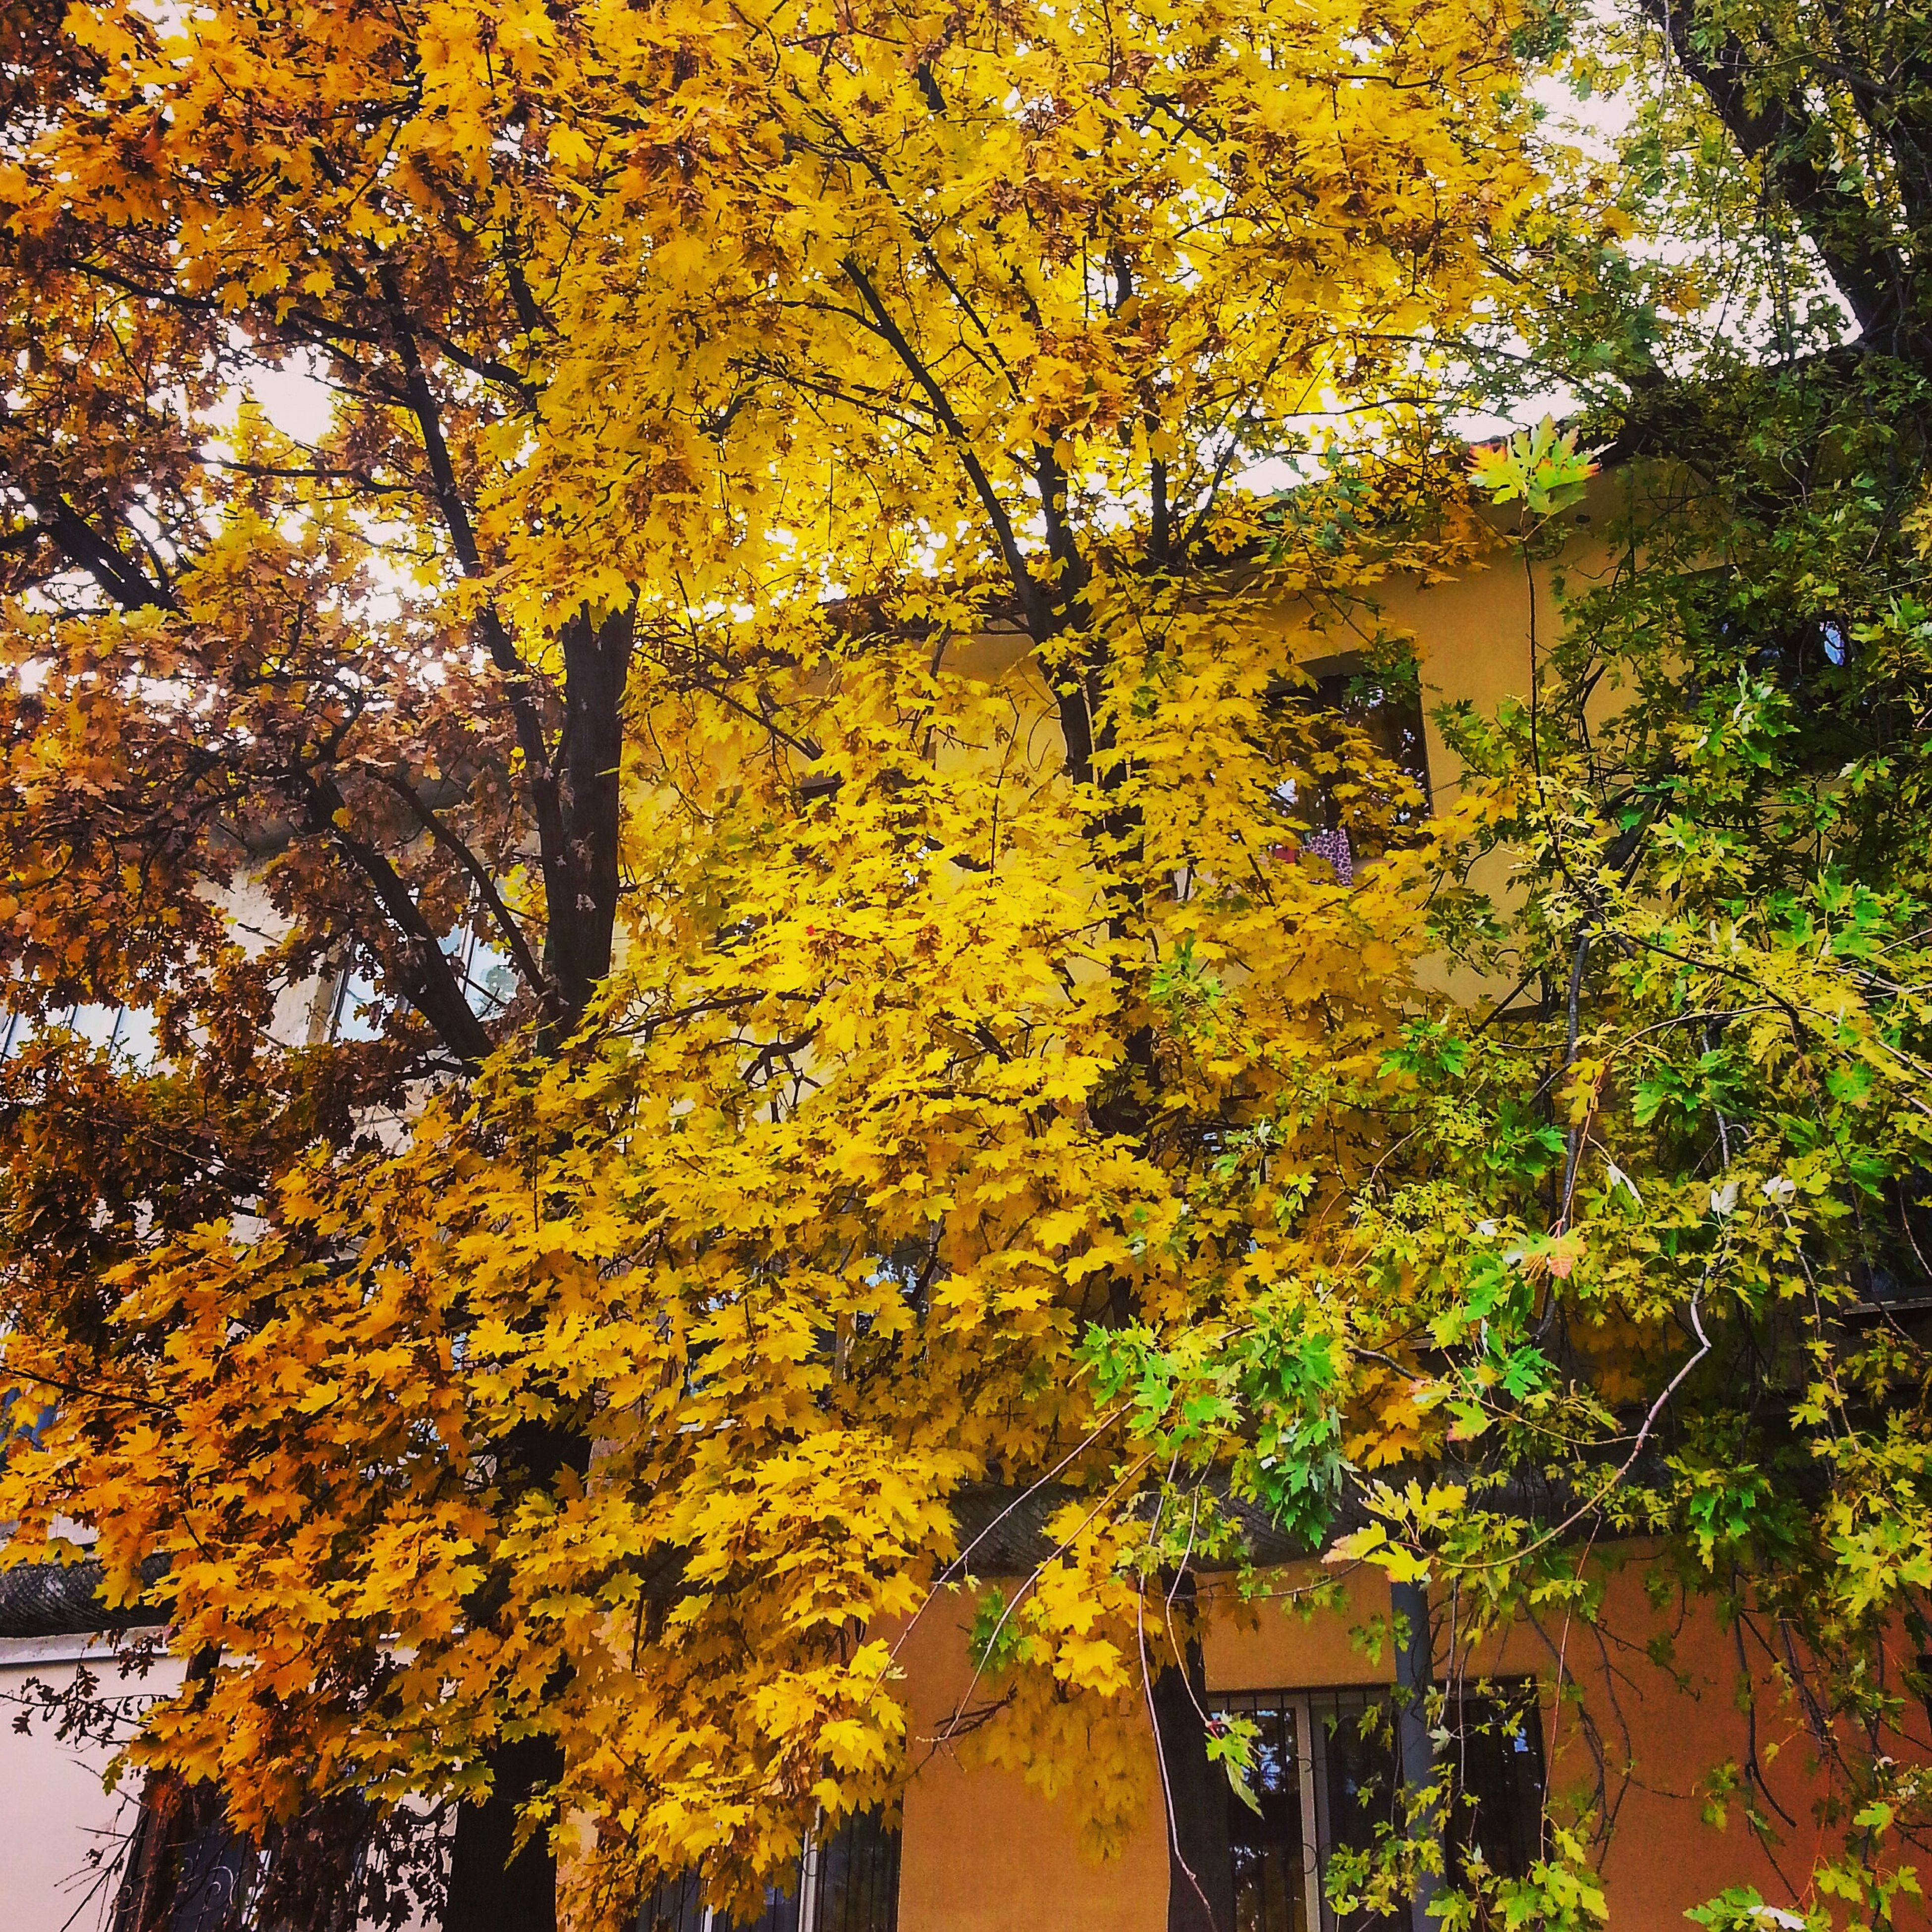 yellow, tree, growth, nature, no people, beauty in nature, leaf, autumn, low angle view, change, branch, outdoors, day, close-up, fragility, freshness